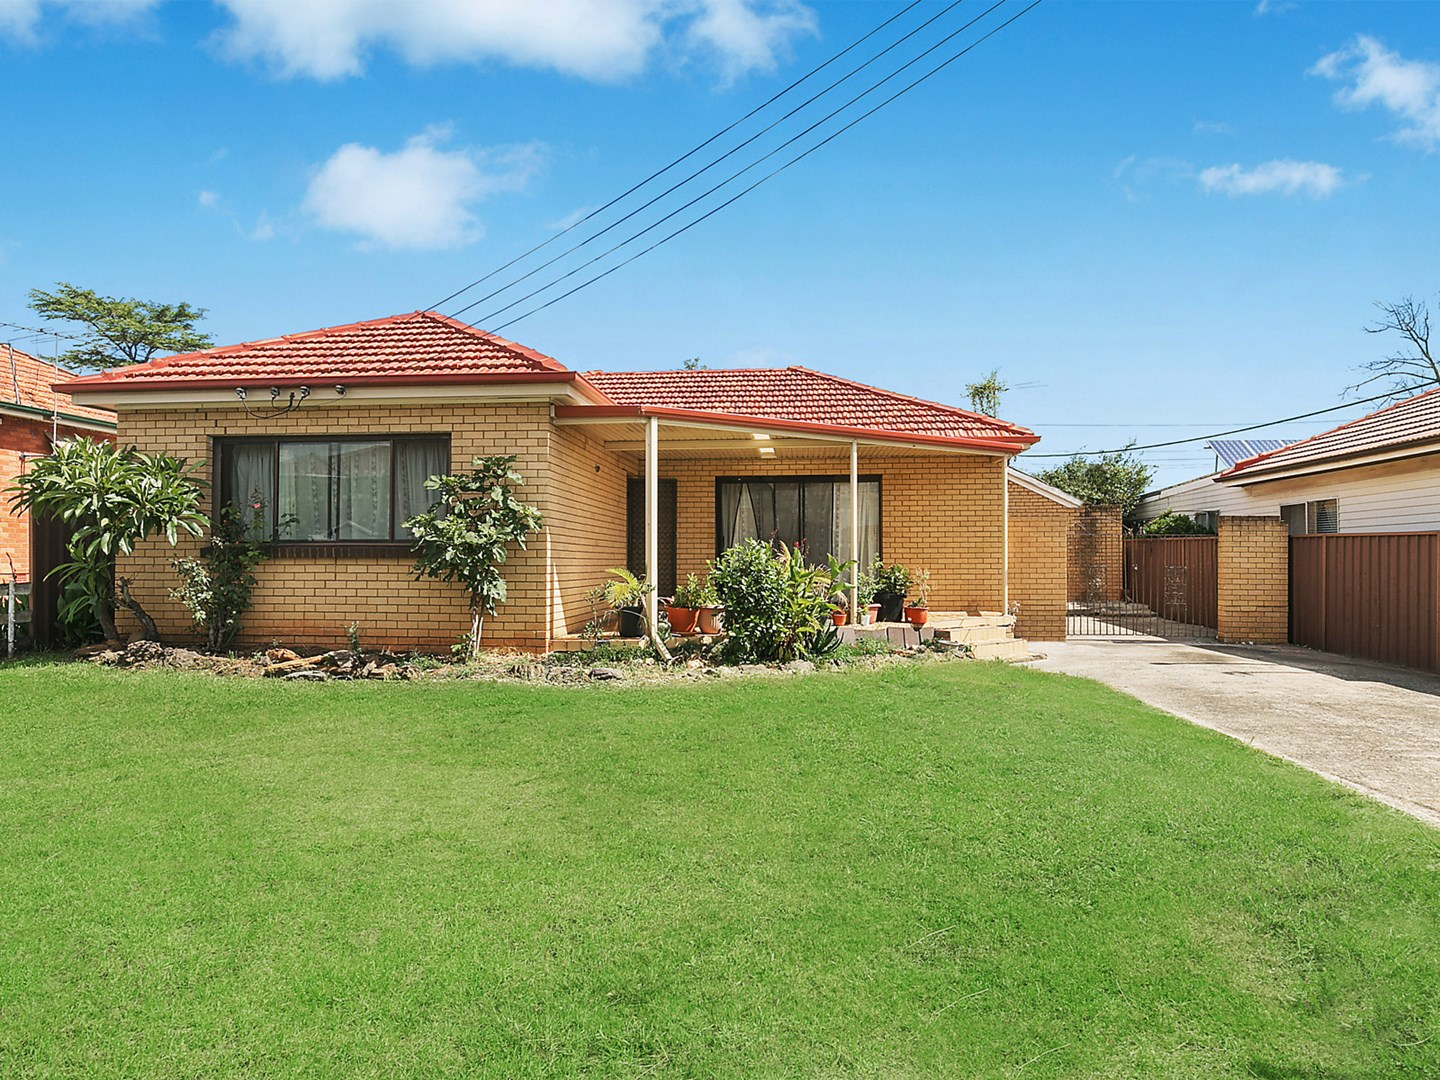 6 danalam street liverpool nsw 2170 house for sale for Kitchens liverpool nsw